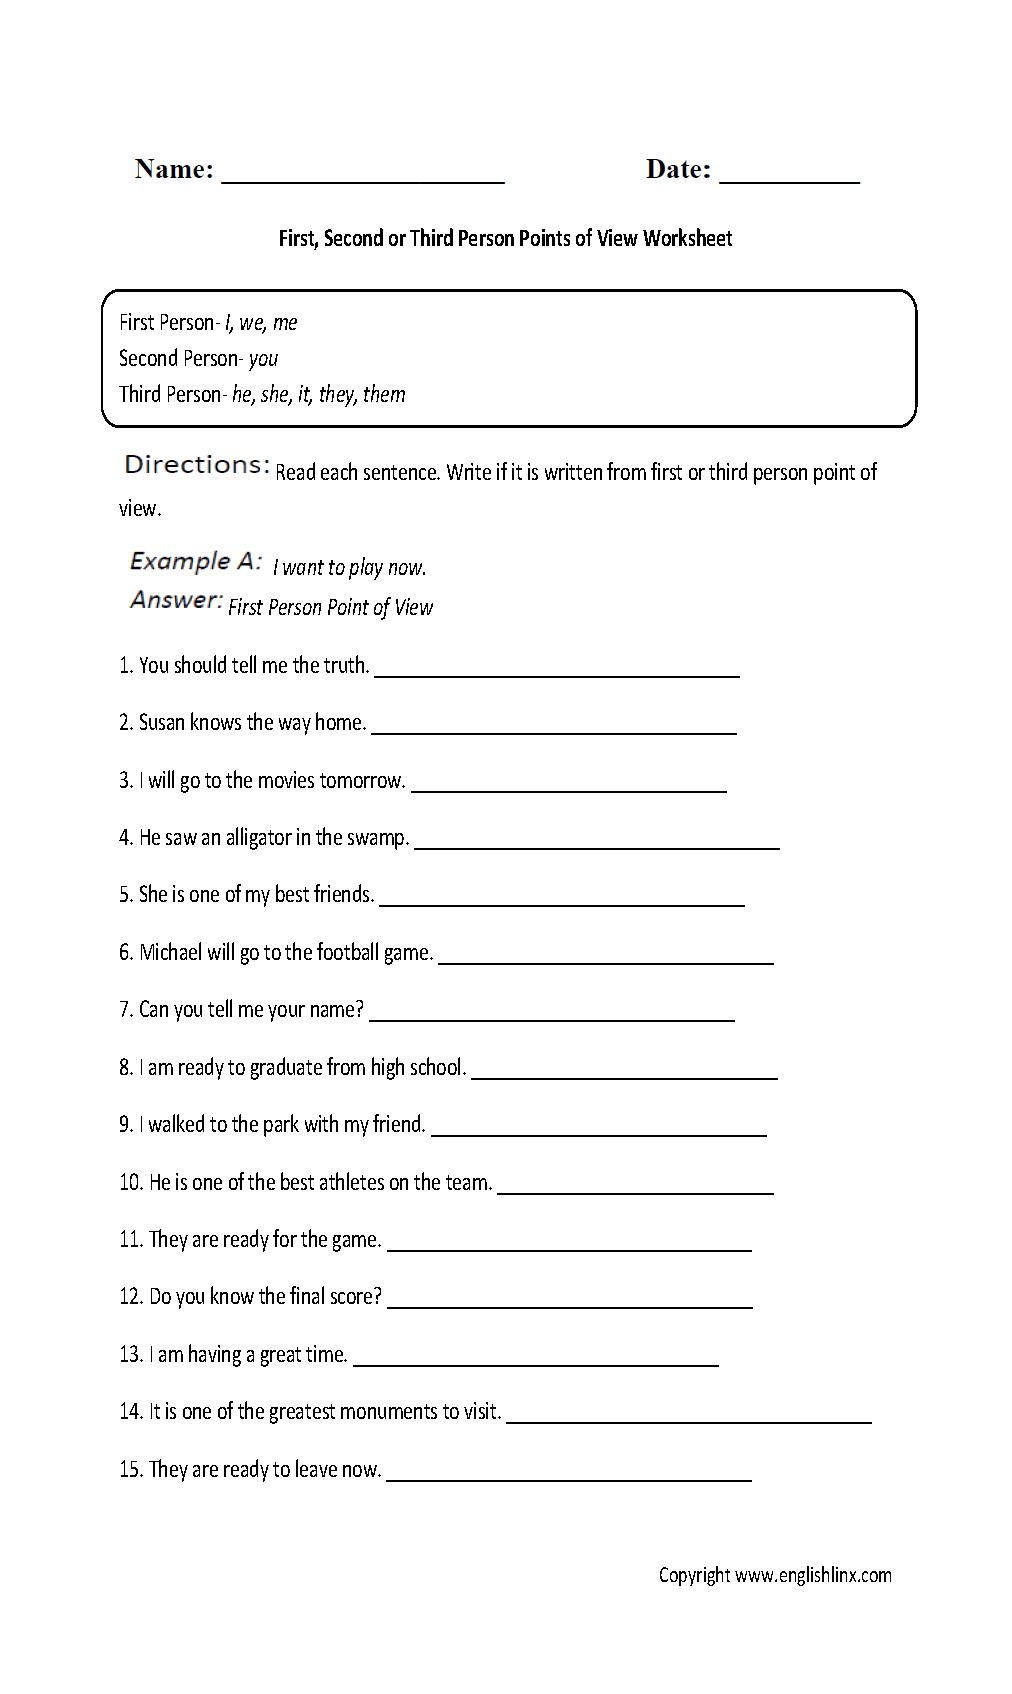 Weirdmailus  Surprising Englishlinxcom  Point Of View Worksheets With Exciting Point Of View Worksheet With Awesome Phonics Phase  Worksheets Also Letter L Printable Worksheets In Addition Conjunction Worksheets For Grade  And Free Grade One Worksheets As Well As Harvest Festival Worksheets Additionally Punjabi Worksheets For Kids From Englishlinxcom With Weirdmailus  Exciting Englishlinxcom  Point Of View Worksheets With Awesome Point Of View Worksheet And Surprising Phonics Phase  Worksheets Also Letter L Printable Worksheets In Addition Conjunction Worksheets For Grade  From Englishlinxcom